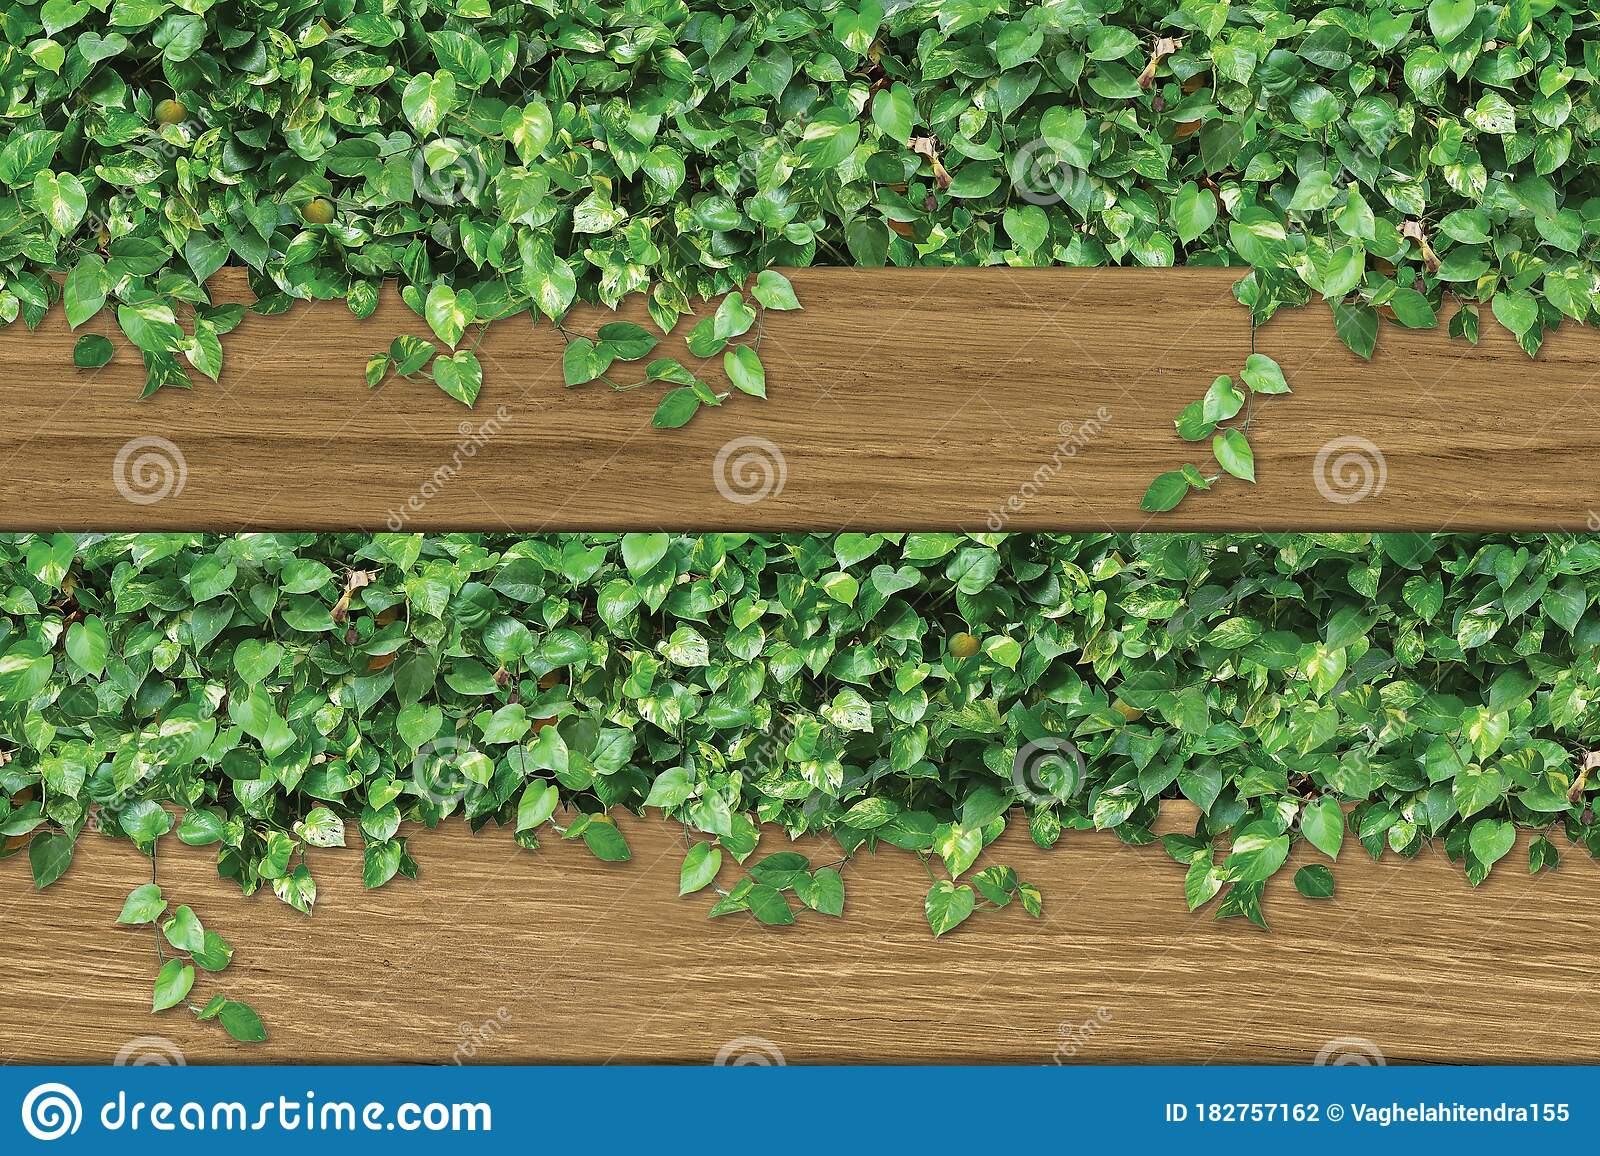 3d Ceramic Wall Tiles 3d Rendering Wood And Green Leaves For Wall Decor Modern Illustration For Wall Decor Garden Stock Illustration Illustration Of Classic Endless 182757162